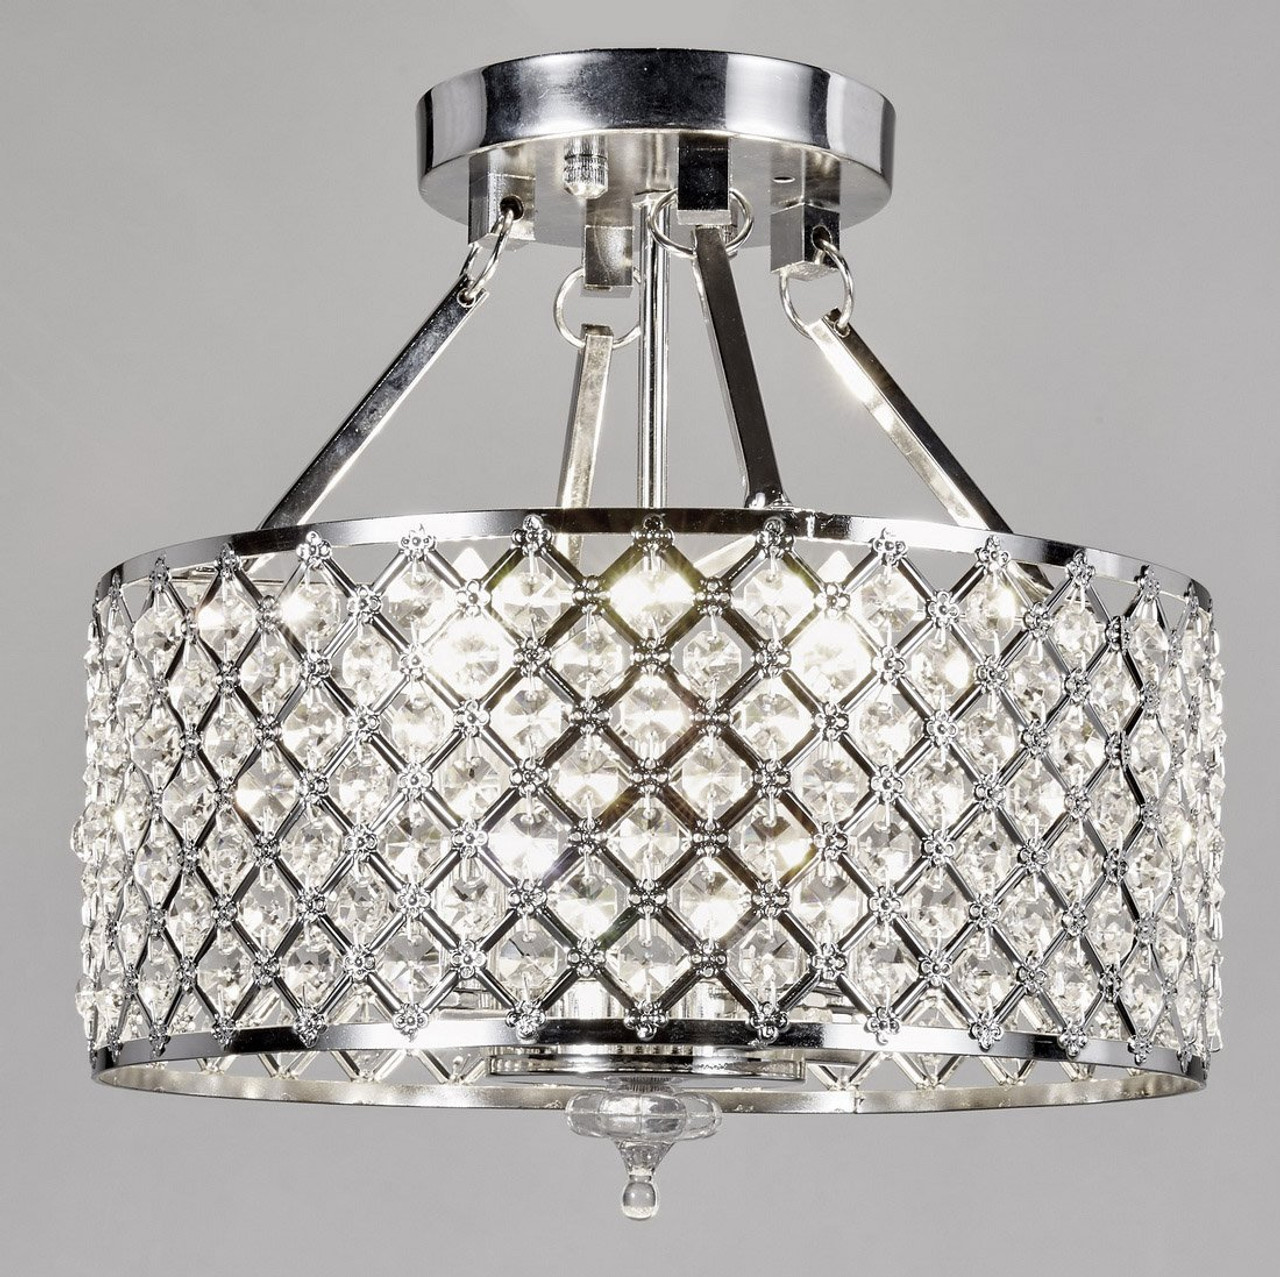 New galaxy 4 light chrome finish round metal shade crystal new galaxy 4 light chrome finish round metal shade crystal chandelier semi flush mount aloadofball Choice Image